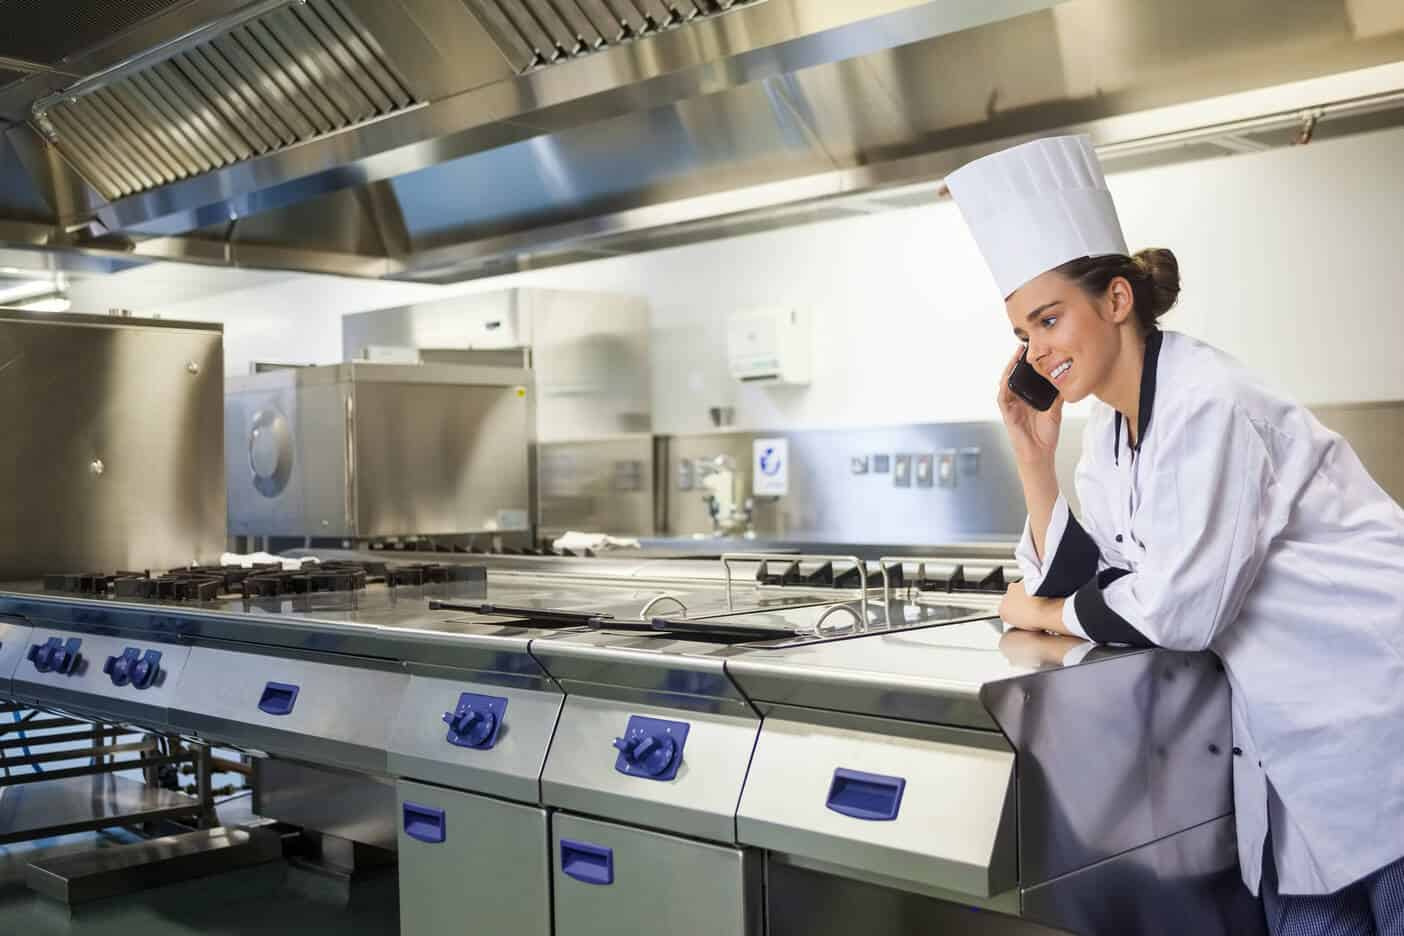 Our Regular Deep Cleaning Can Benefit Your Commercial Kitchen